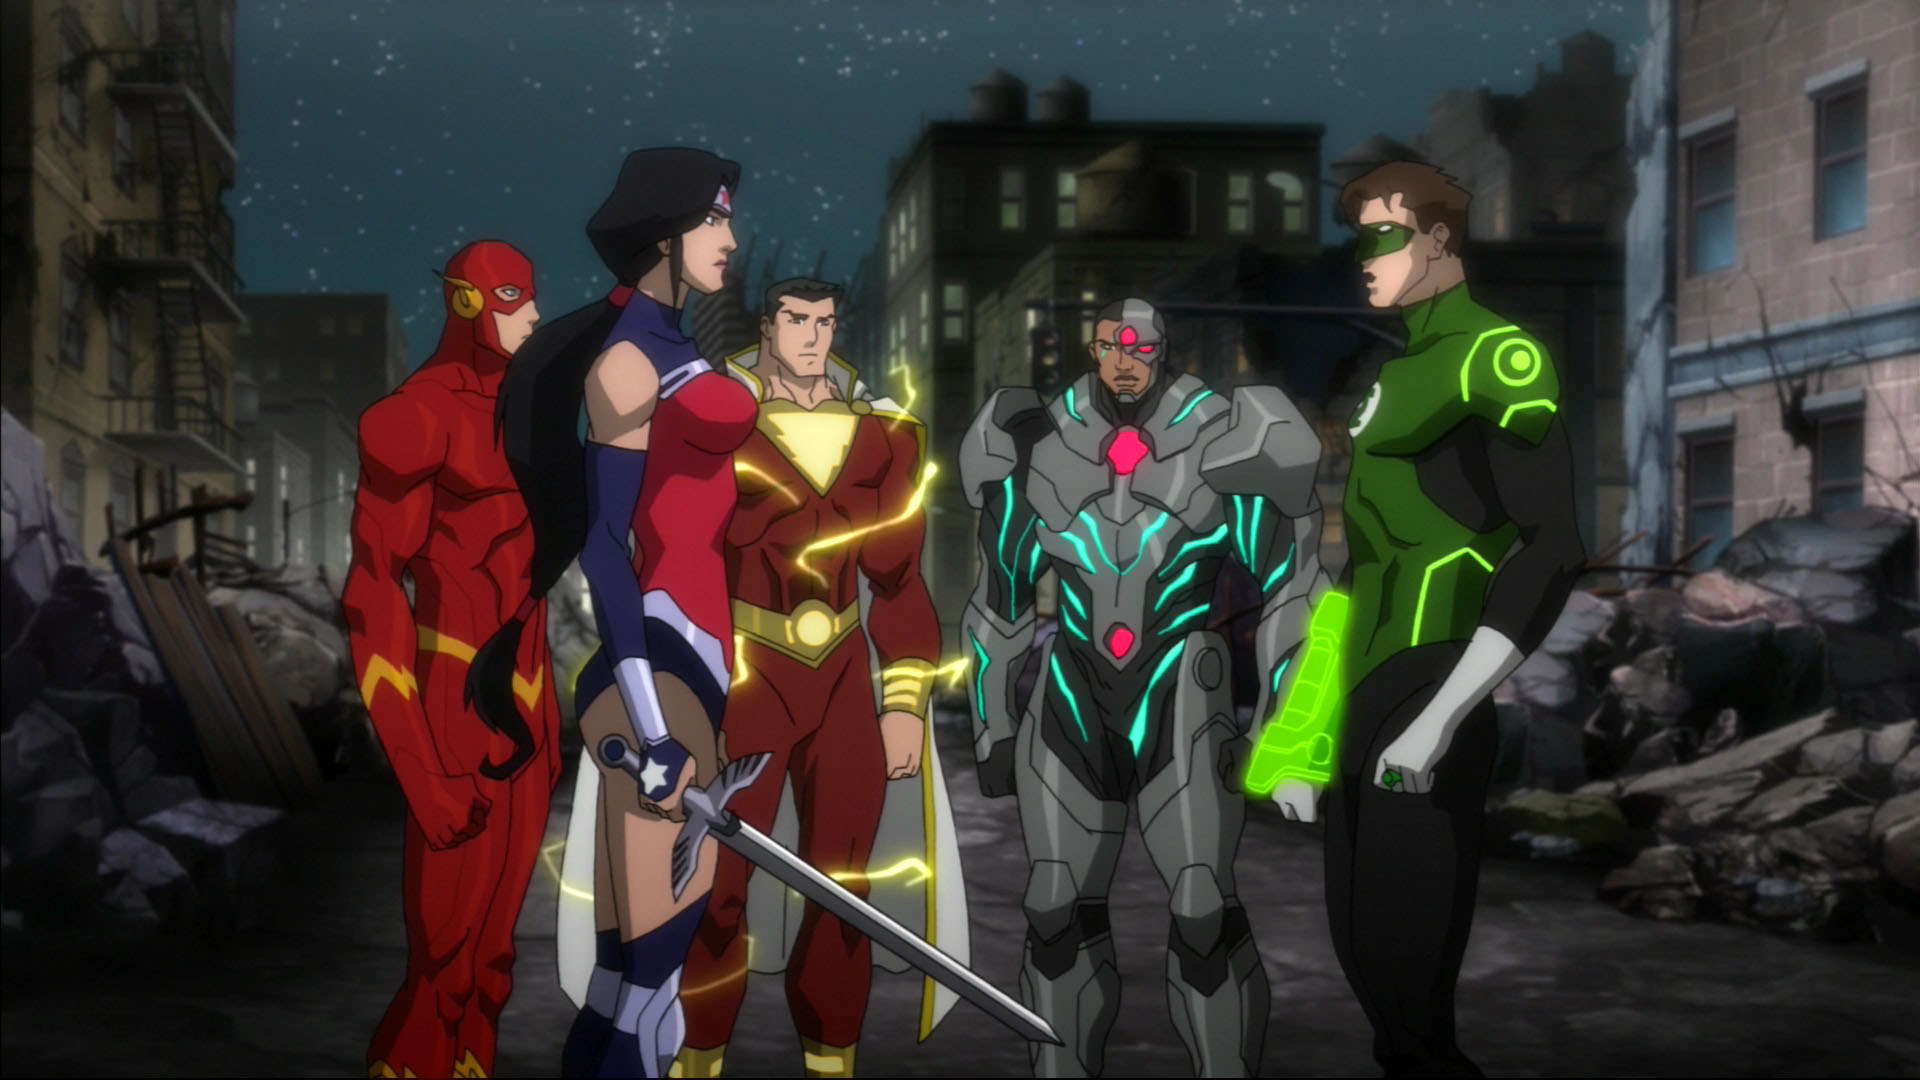 download justice league war animated movie in hindi